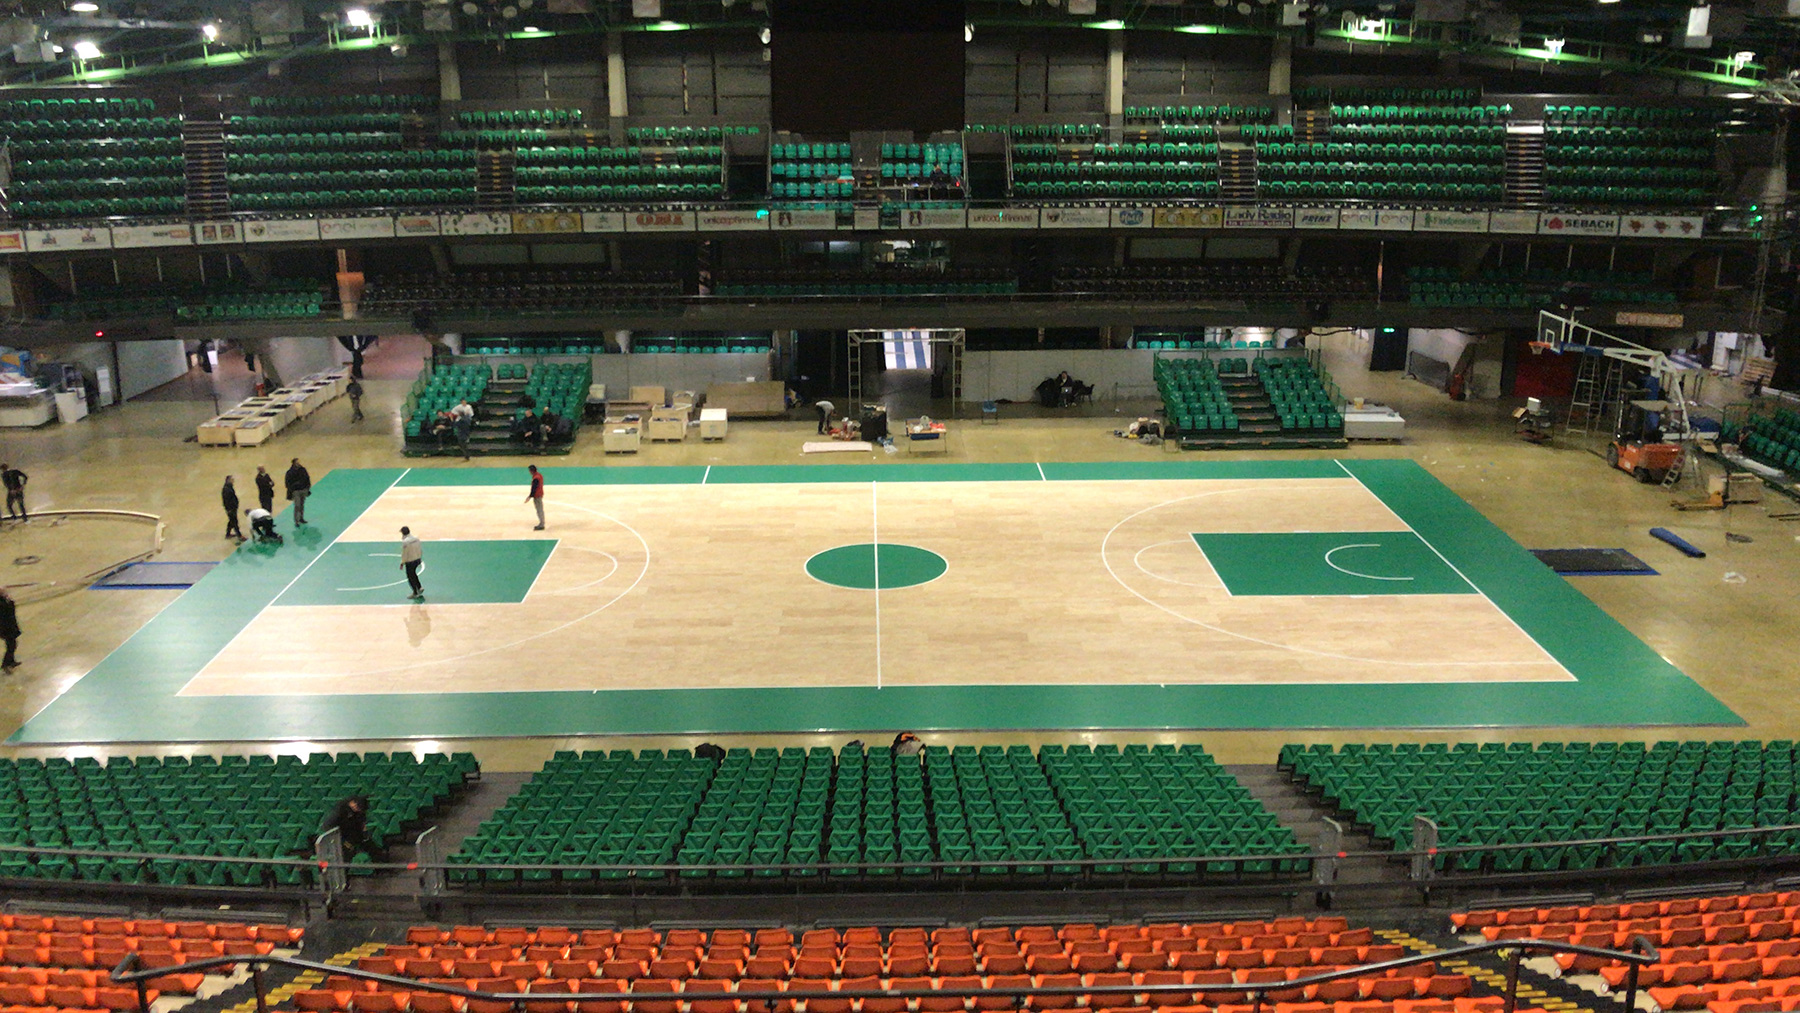 Everything is ready! The new removable sports floor DR awaits you at the Nelson Mandela Forum in Florence from 15 to 18 February